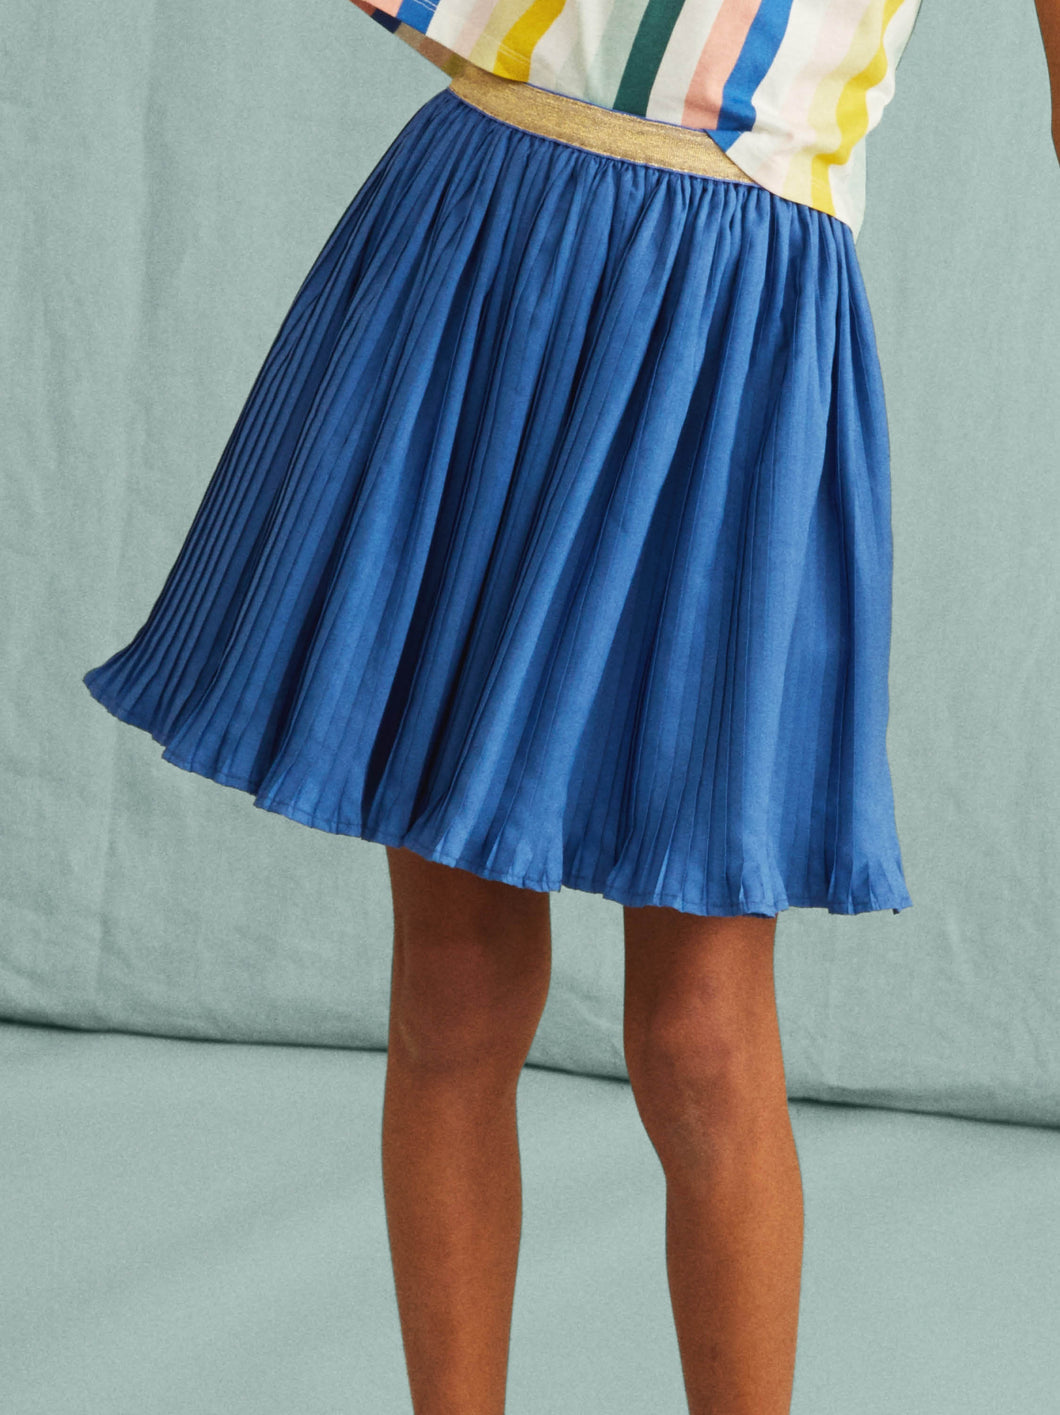 Metallic Waist Pleated Skirt - Posh Tots Children's Boutique